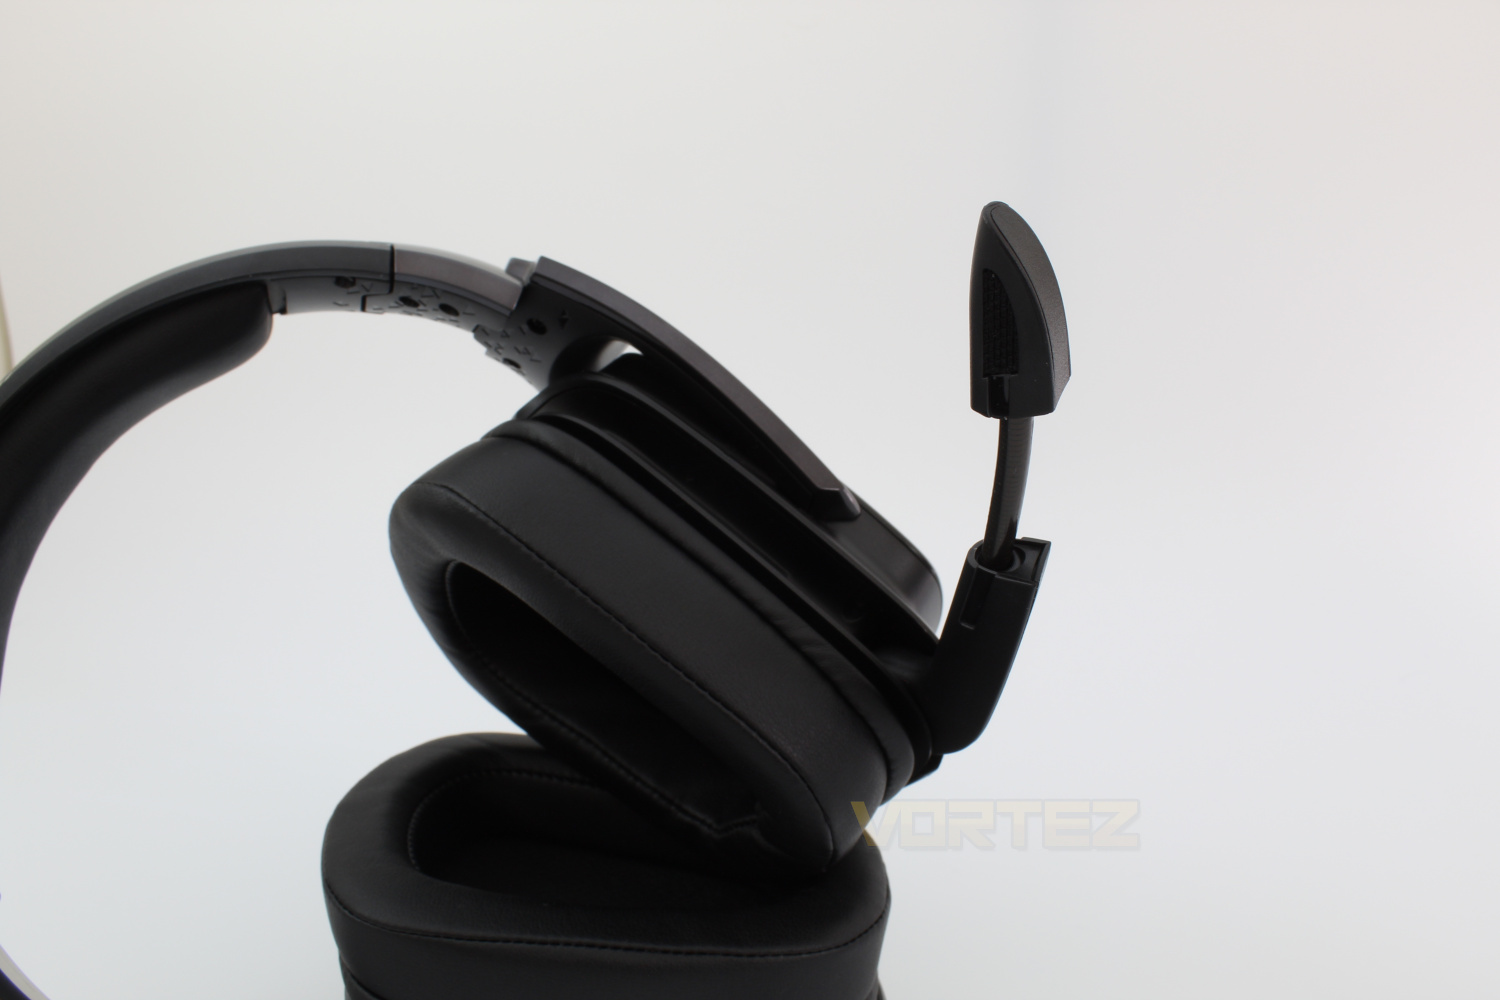 Logitech G935 Wireless 7 1 Surround Gaming Headset Review - Introduction